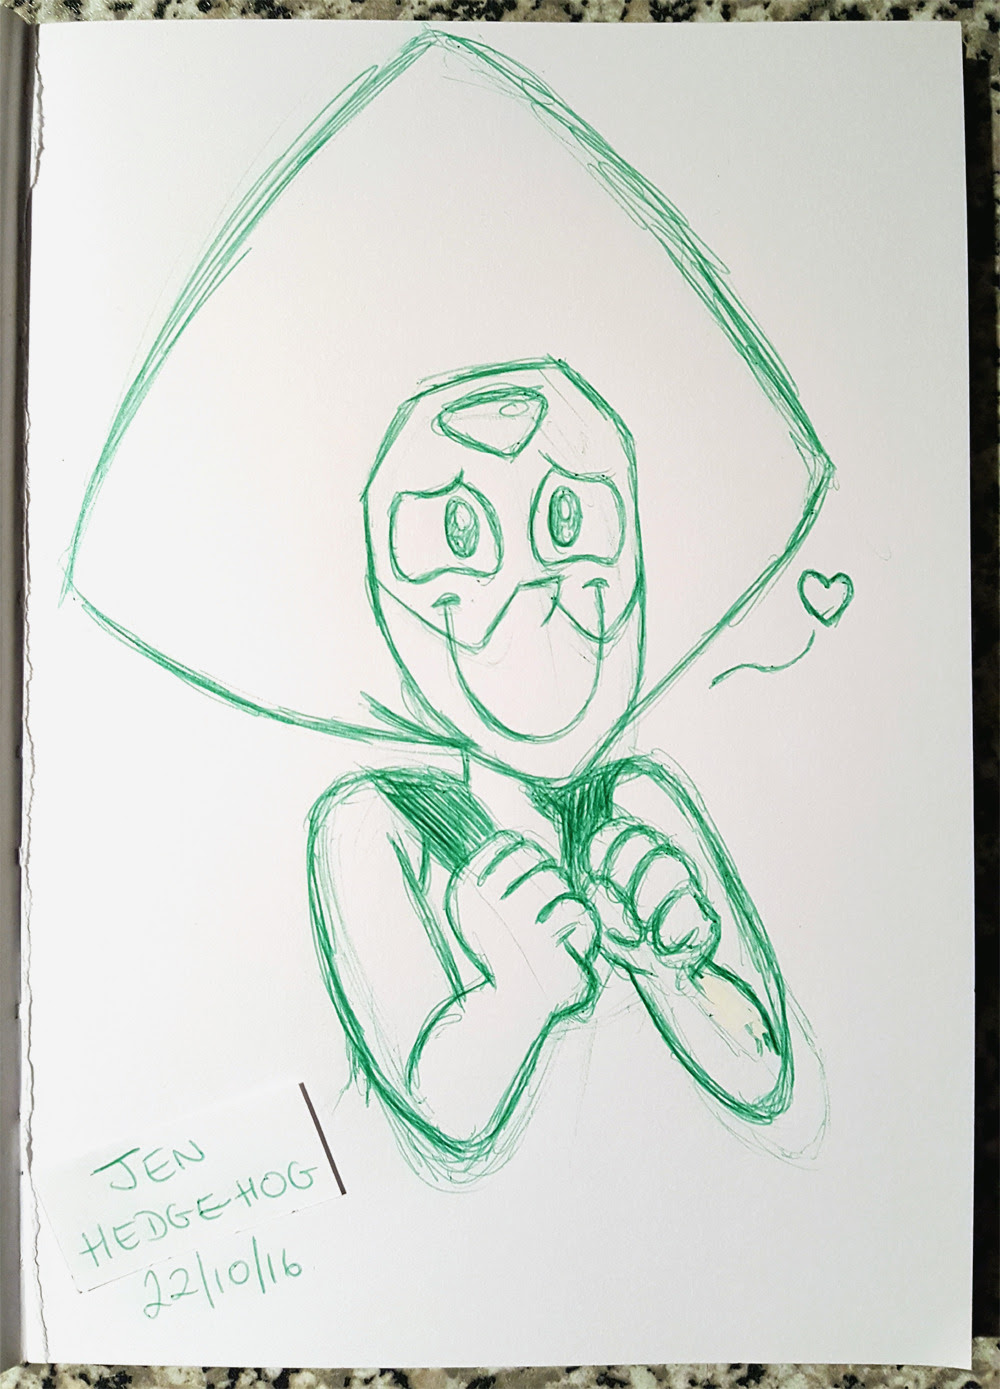 Just a quickie for Inktober, after watching Barn Mates again today (for like the millionth time). I'm still not over the look that Peridot gave to Lapis in that episode. I mean, seriously, she's never...